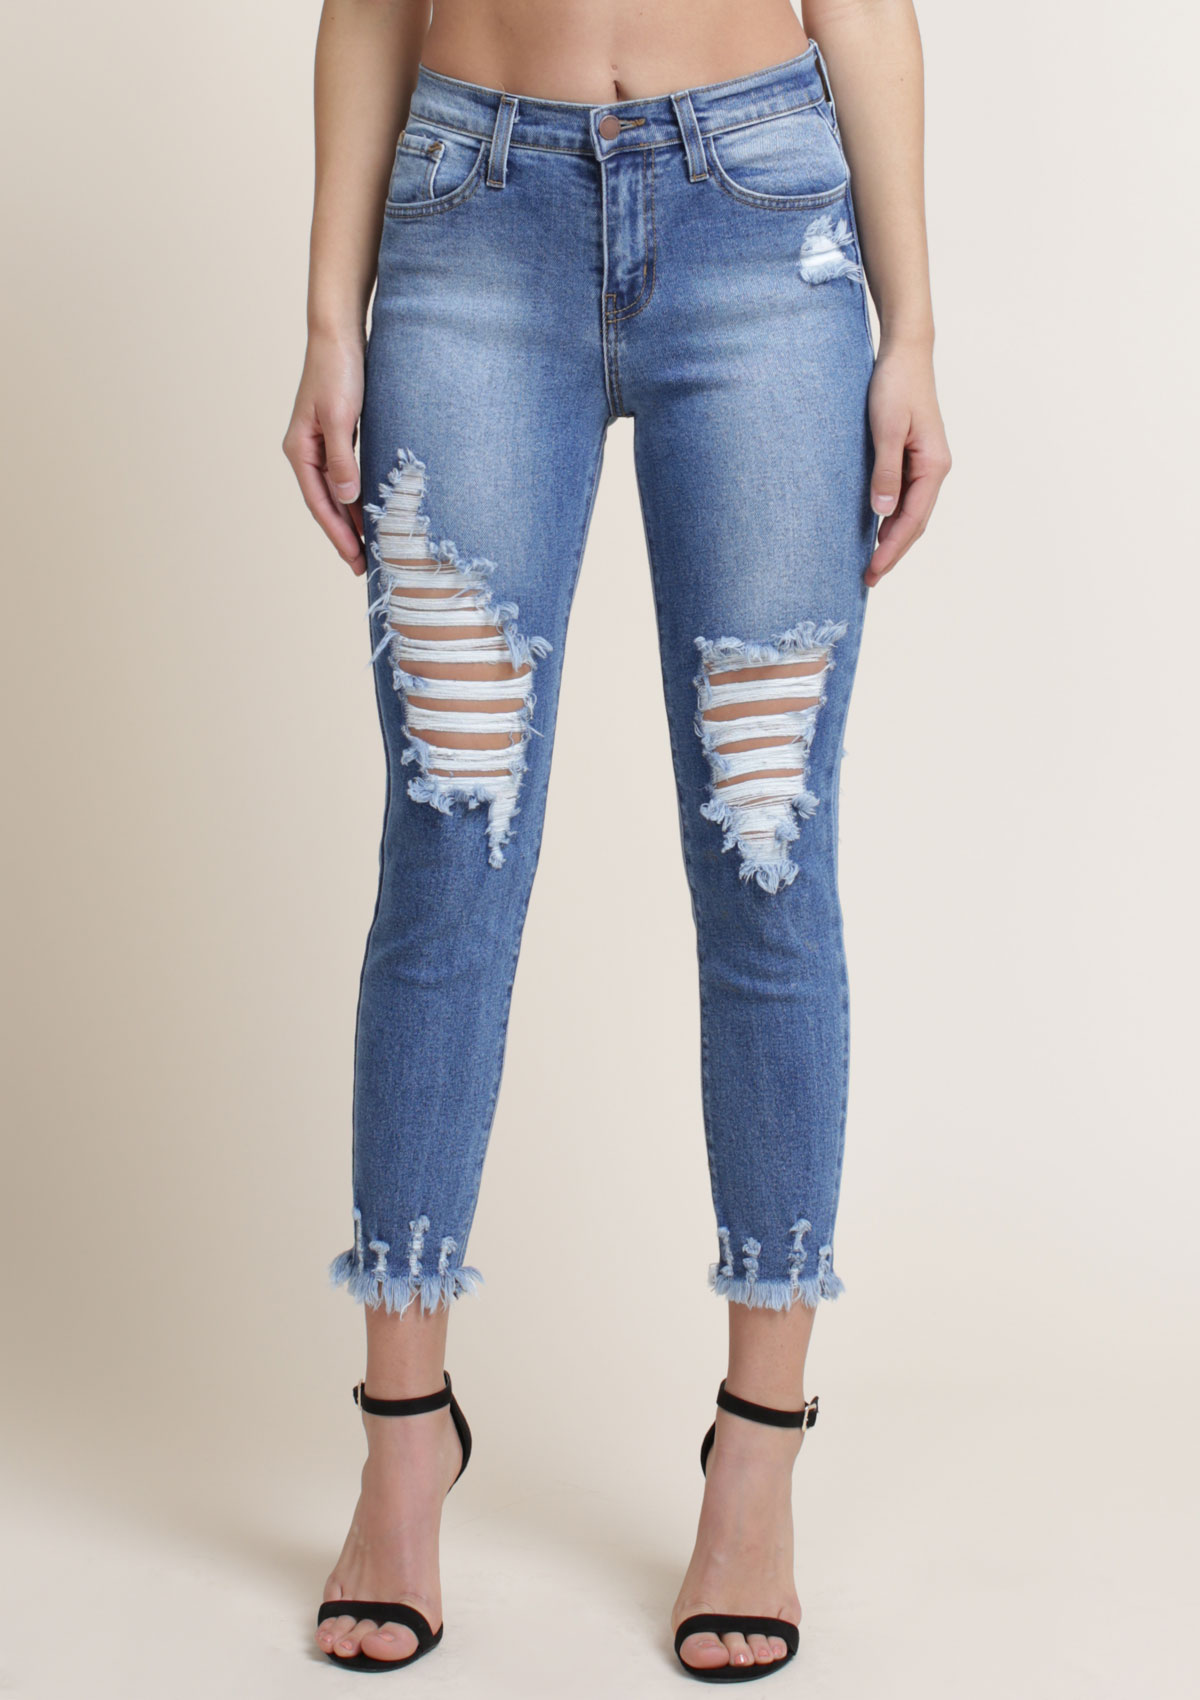 Record Scratch Jeans